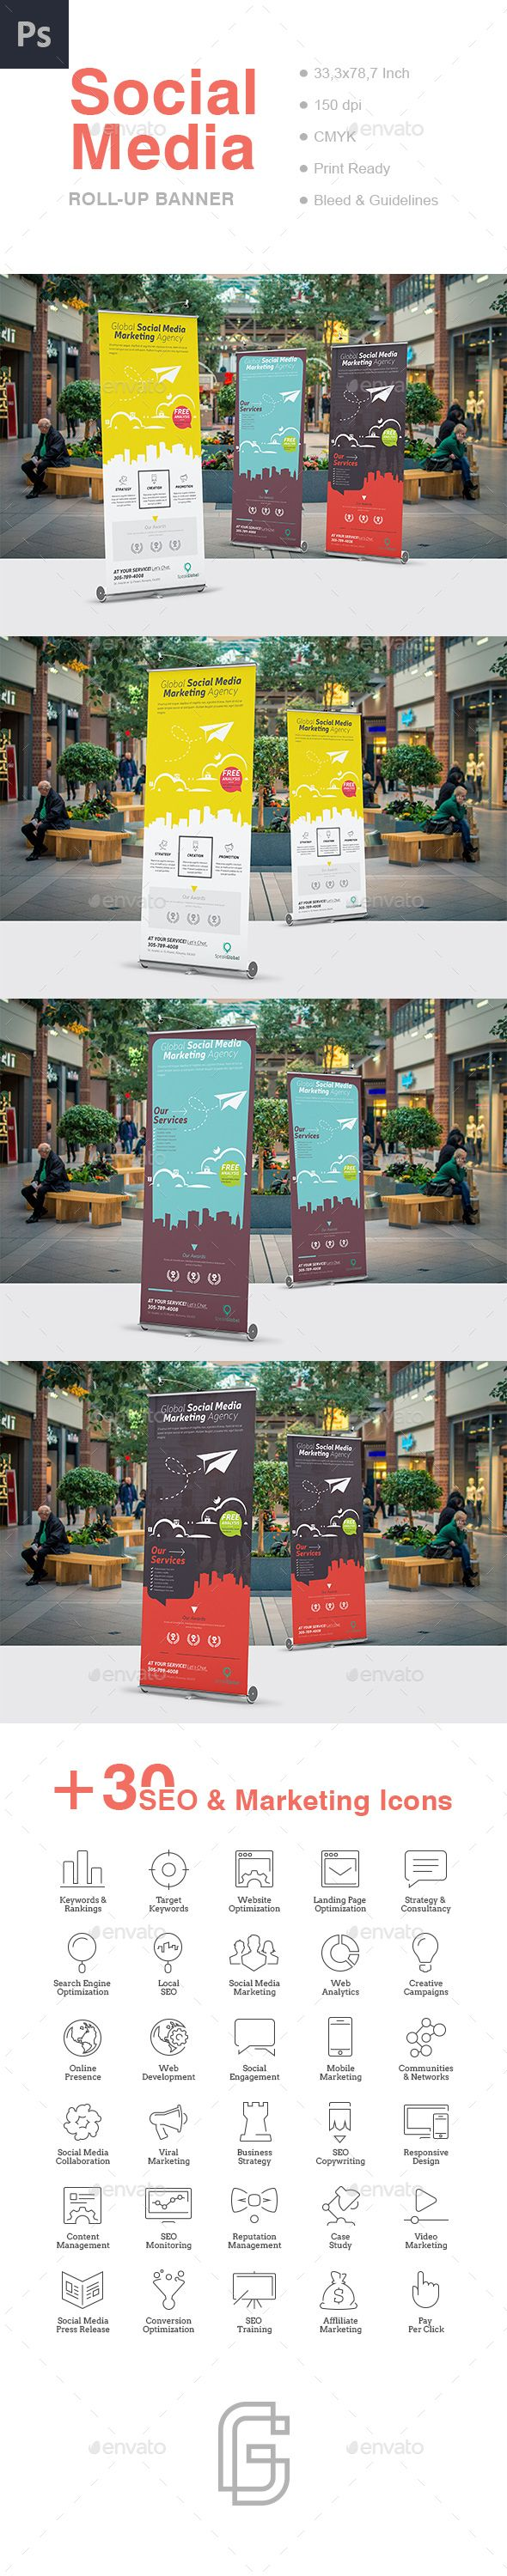 Social Media RollUp Banner — Photoshop PSD #marketing agency #social media • Download ➝ https://graphicriver.net/item/social-media-rollup-banner/19121685?ref=pxcr